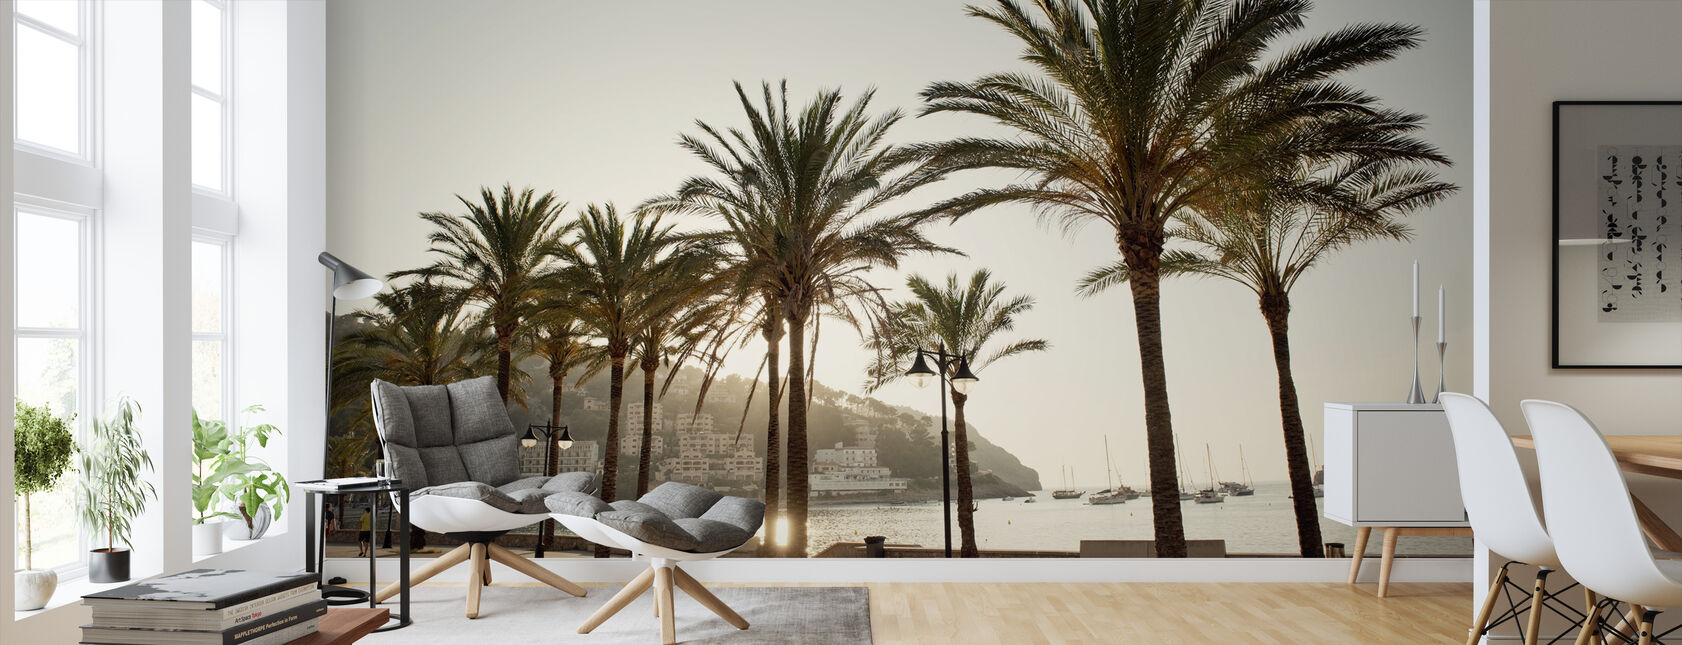 Mallorca Boardwalk - Wallpaper - Living Room